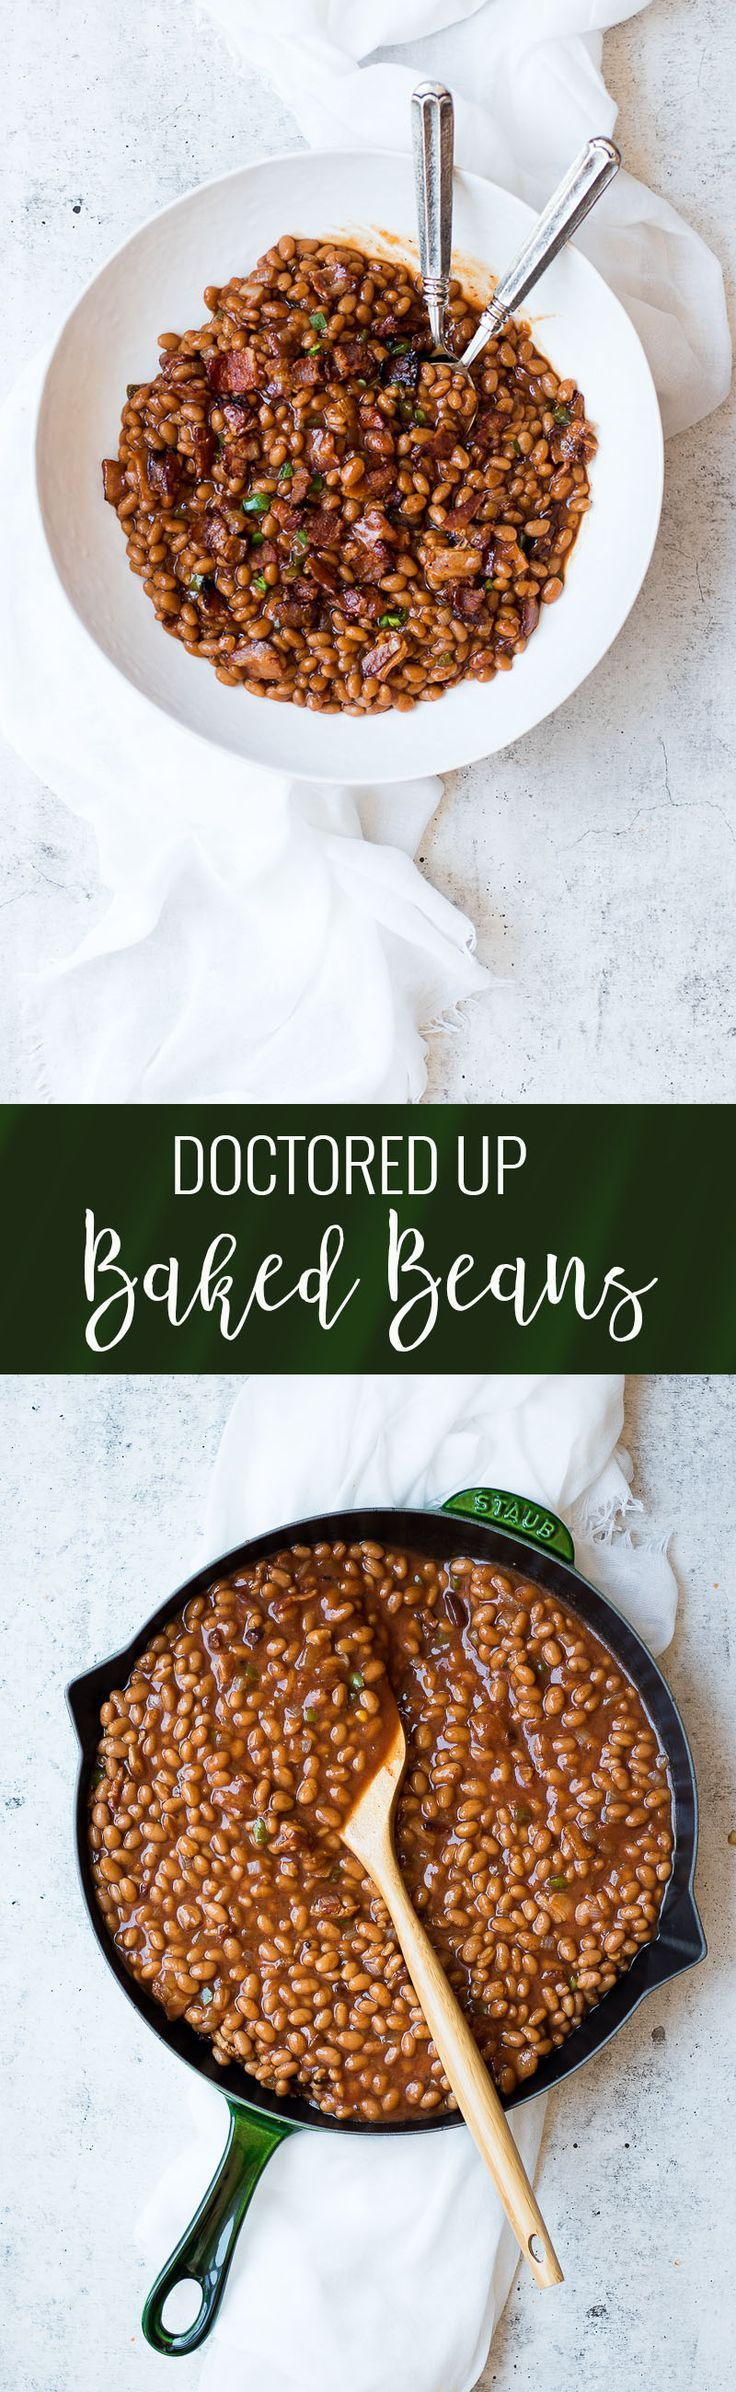 Doctored Up Baked Beans | homemade baked beans recipes | baked bean recipe ideas | baked beans with bacon | baked beans with jalapeno | easy summer side dishes | easy bakes beans recipe | easy barbecue side dish recipes | how to make baked beans || Oh So